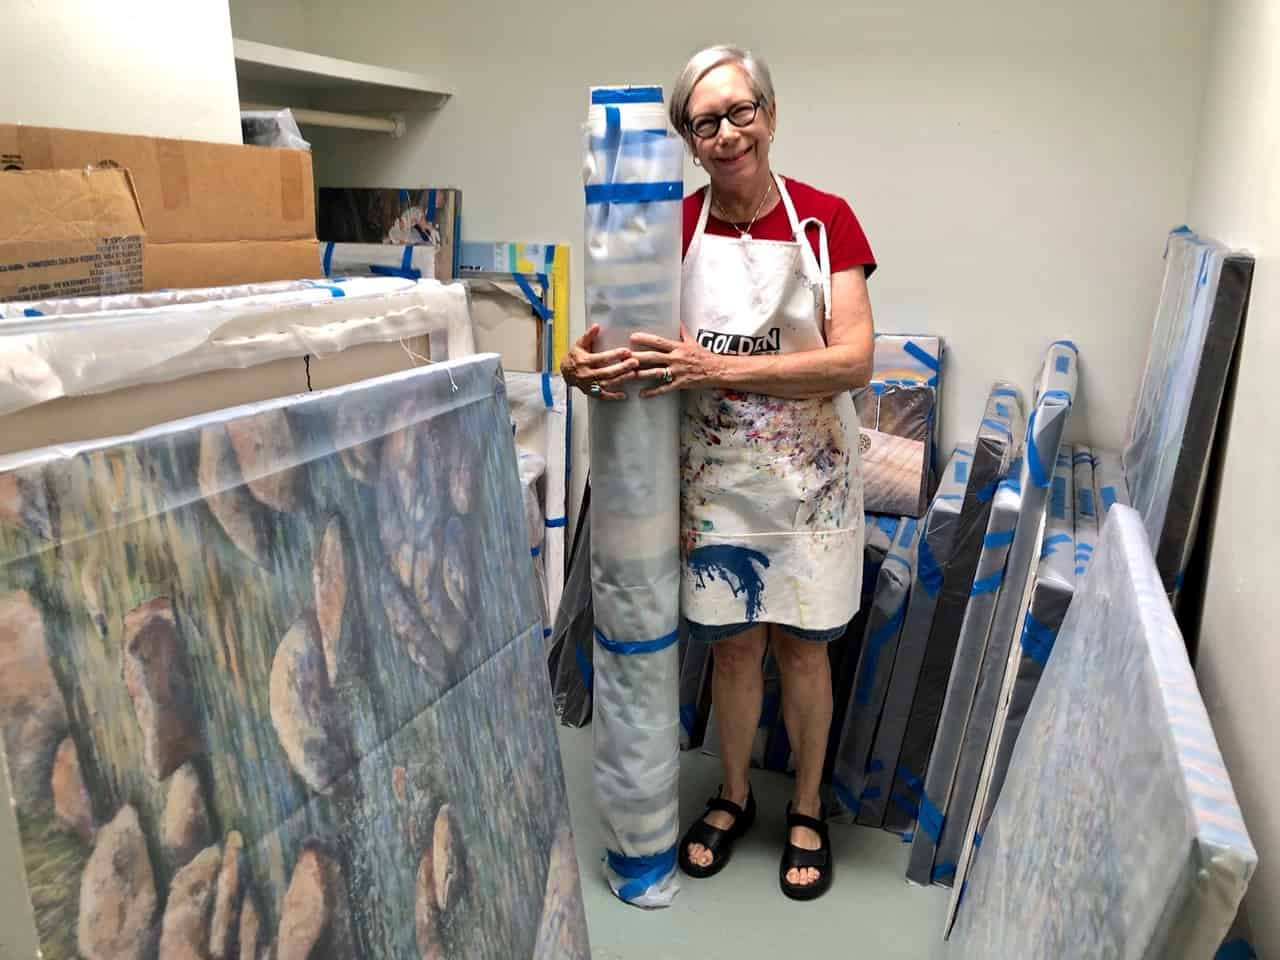 Barbara Kemp Cowlin with a roll of canvases and paintings under wraps in a storage closet